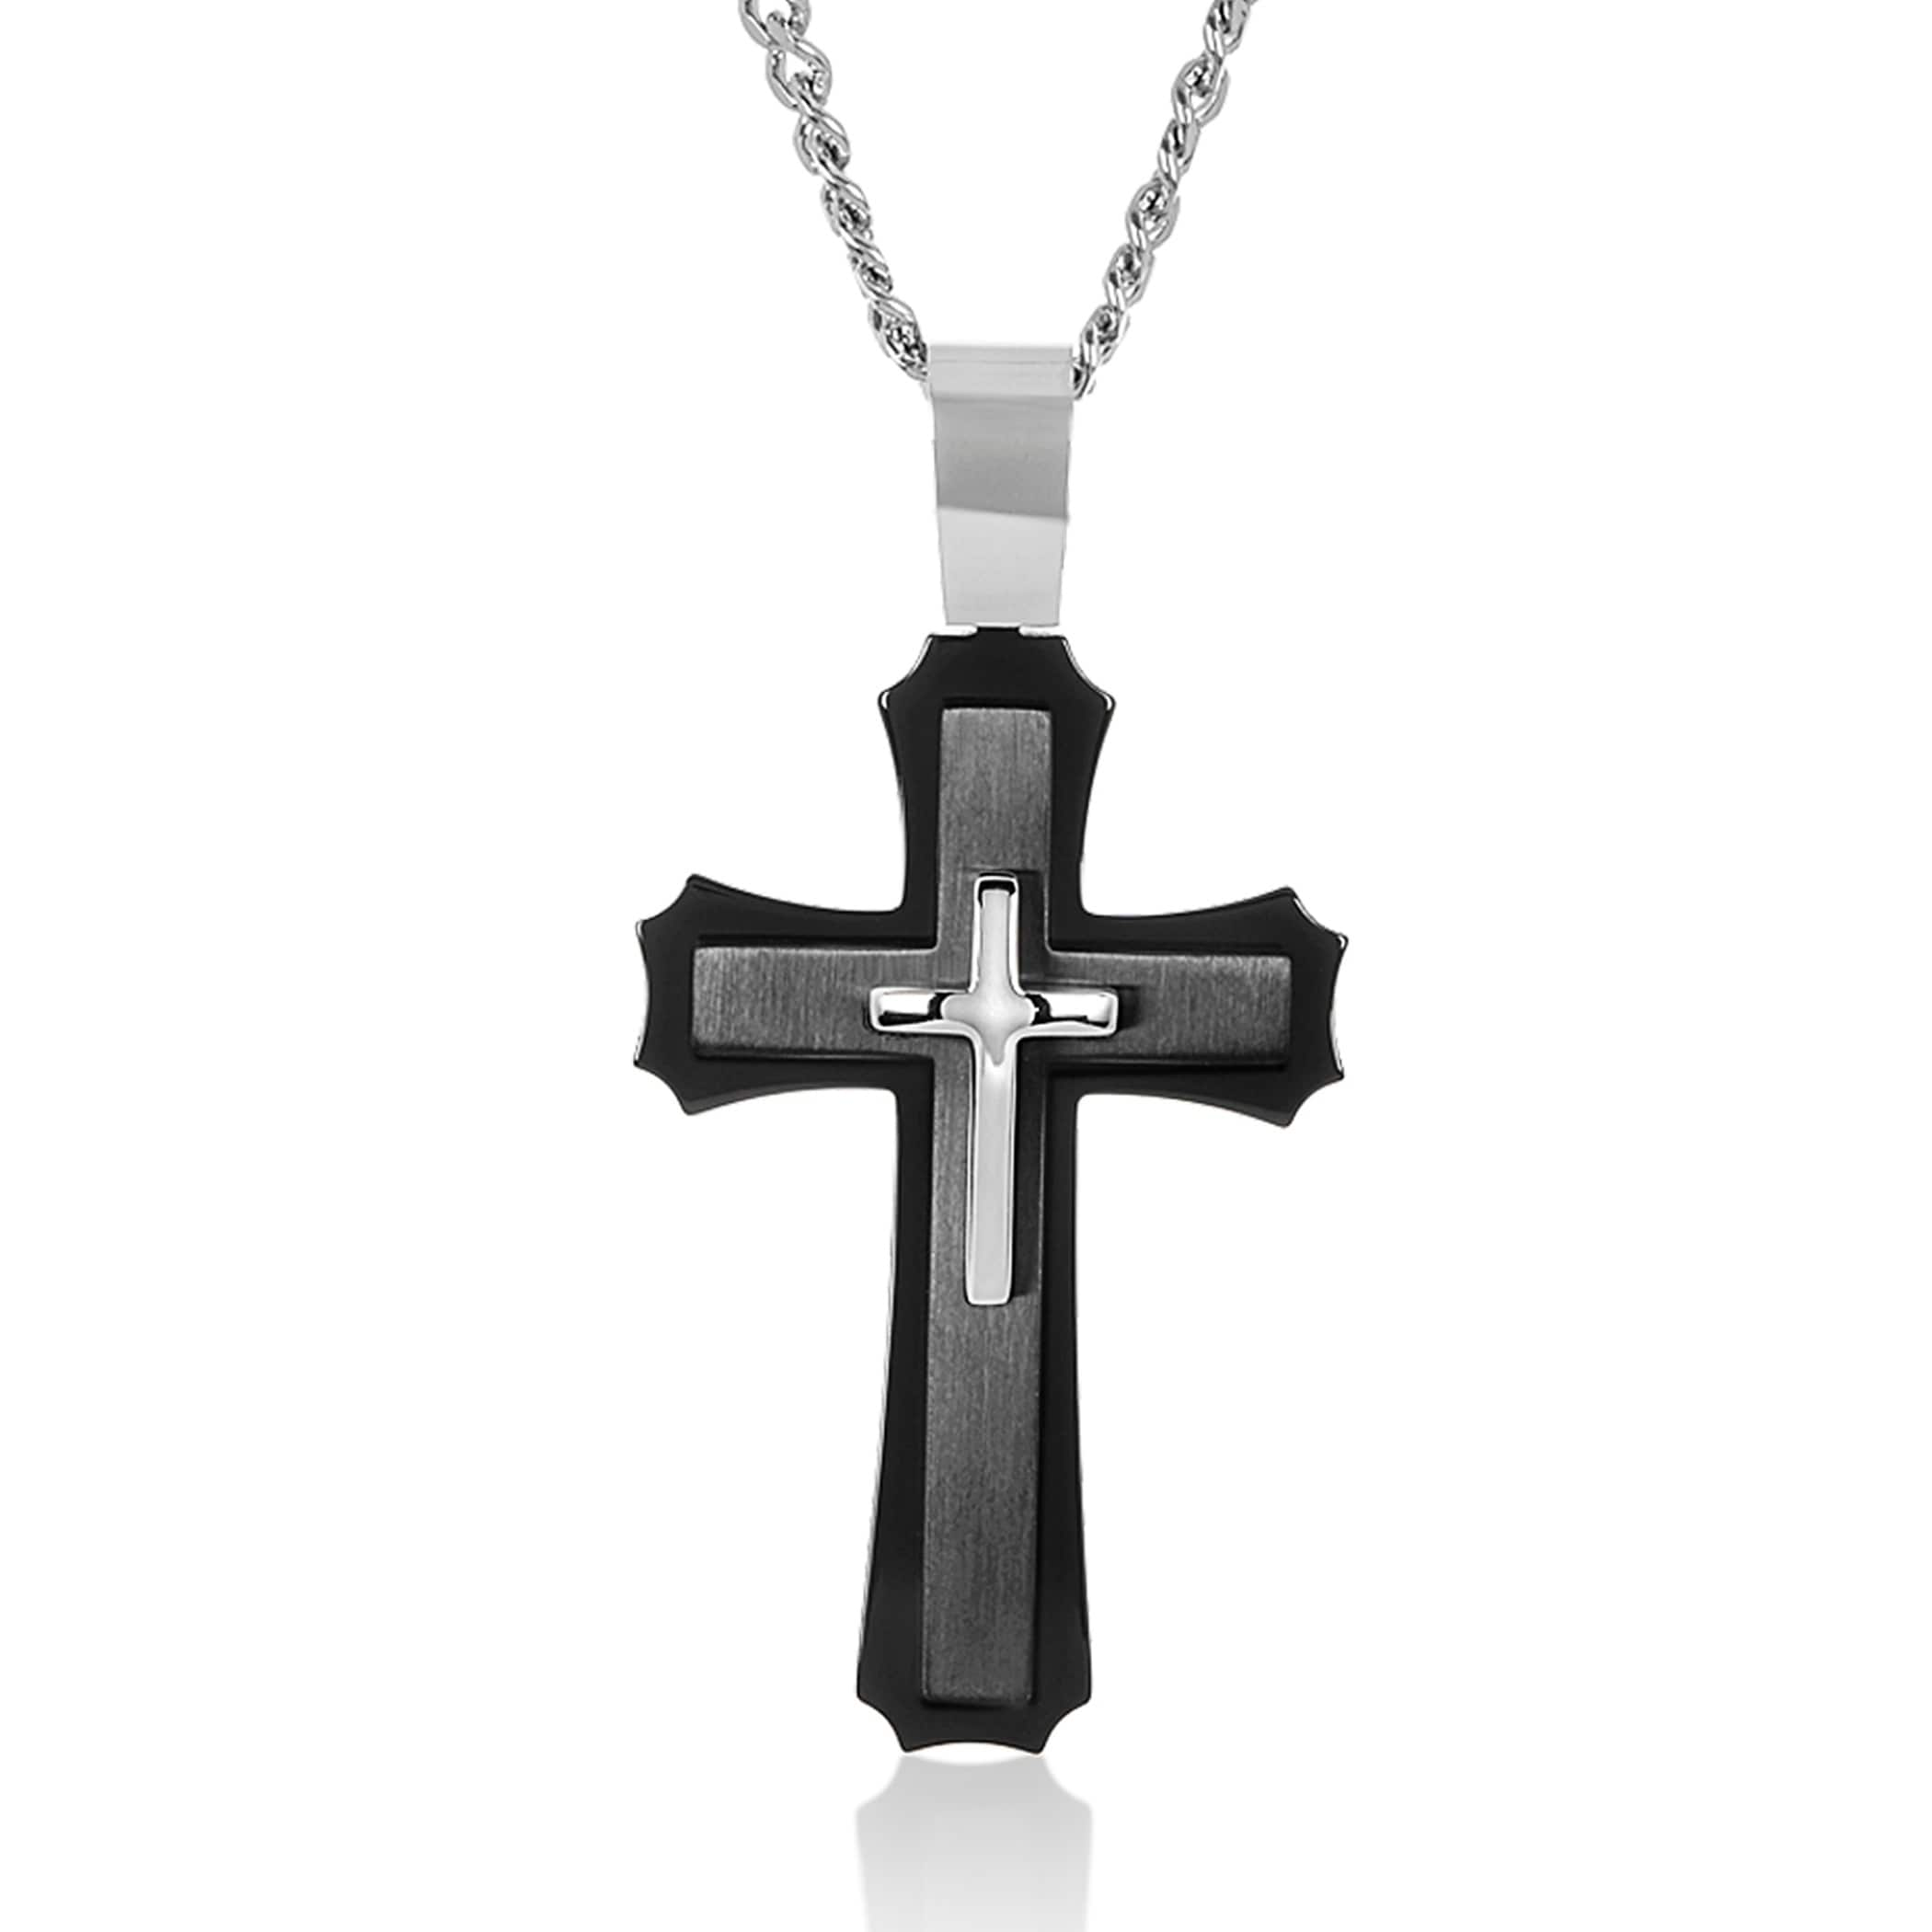 1mm Stainless Steel IP Black-Plated Cross Pendant Necklace